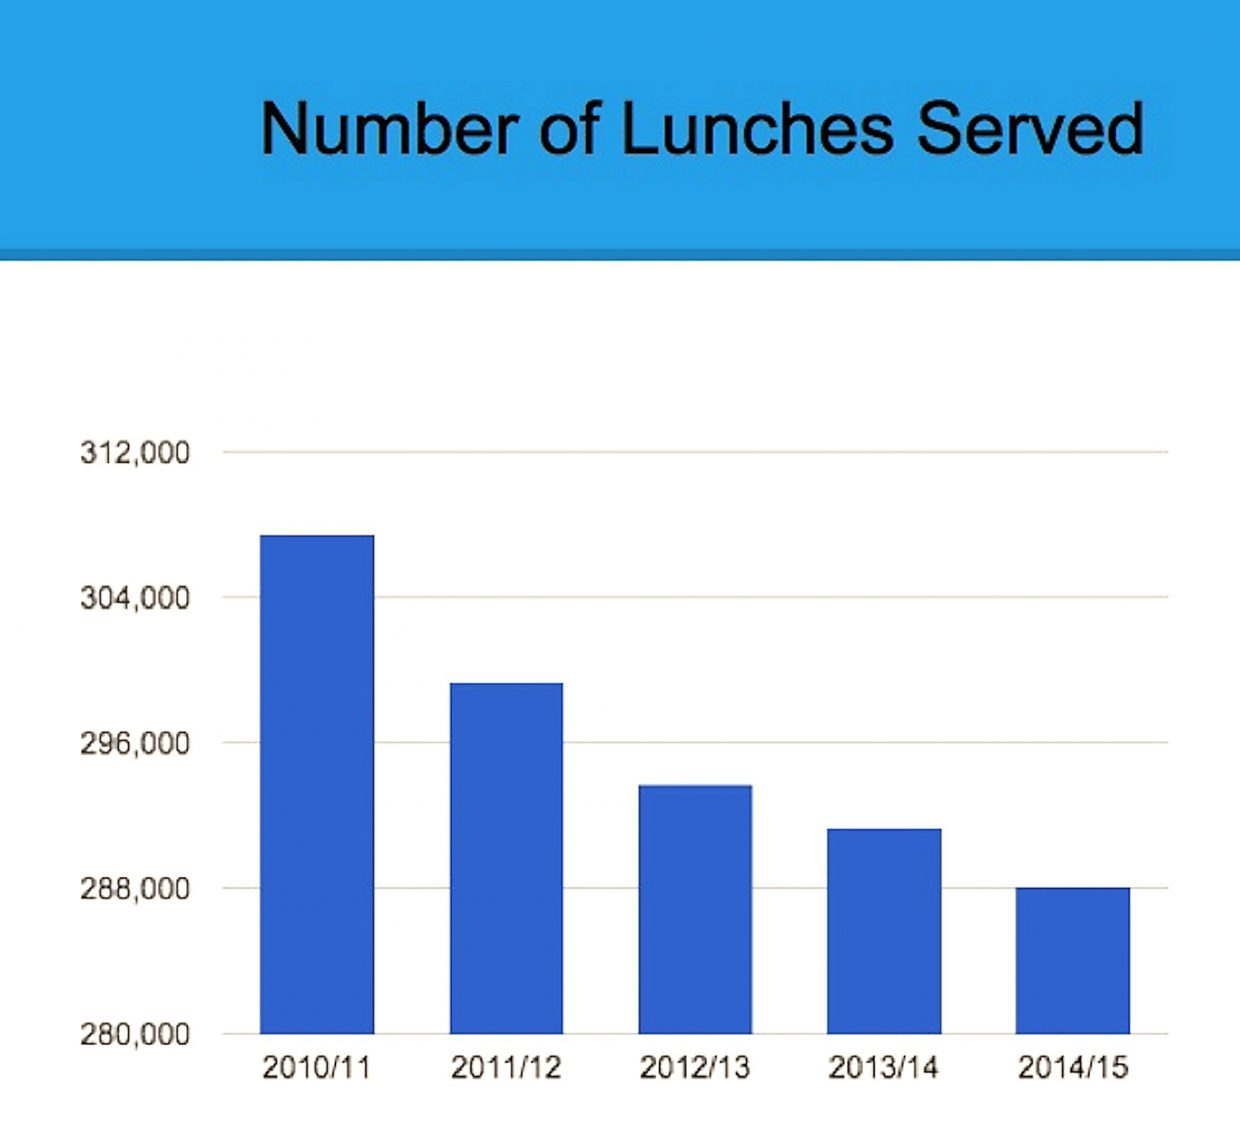 School lunches served in the Roaring Fork School District has been on a downward trend in recent years.